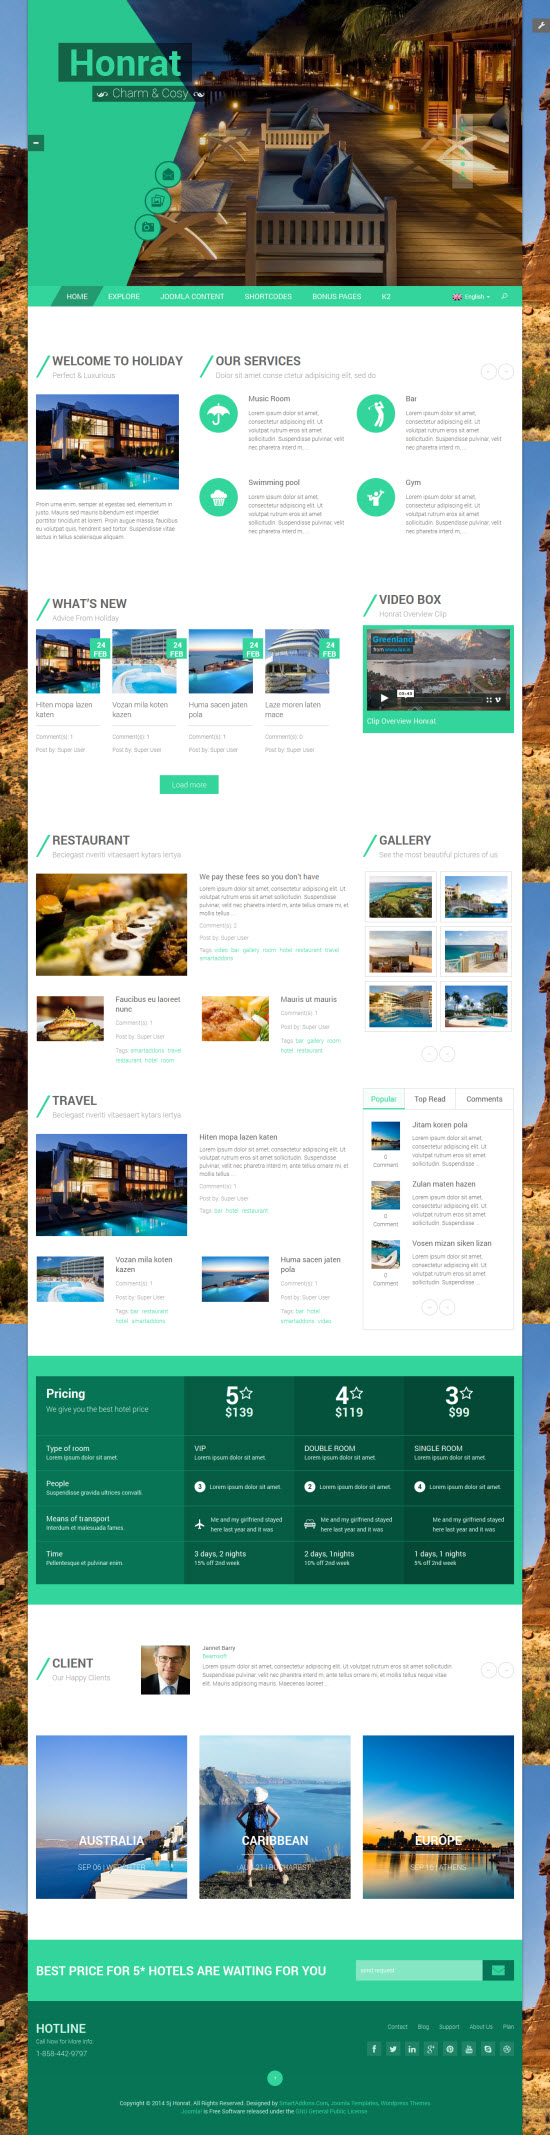 SJ Honrat - Responsive Joomla Hotel, resort & spa Template - 04-layout-boxed.jpg